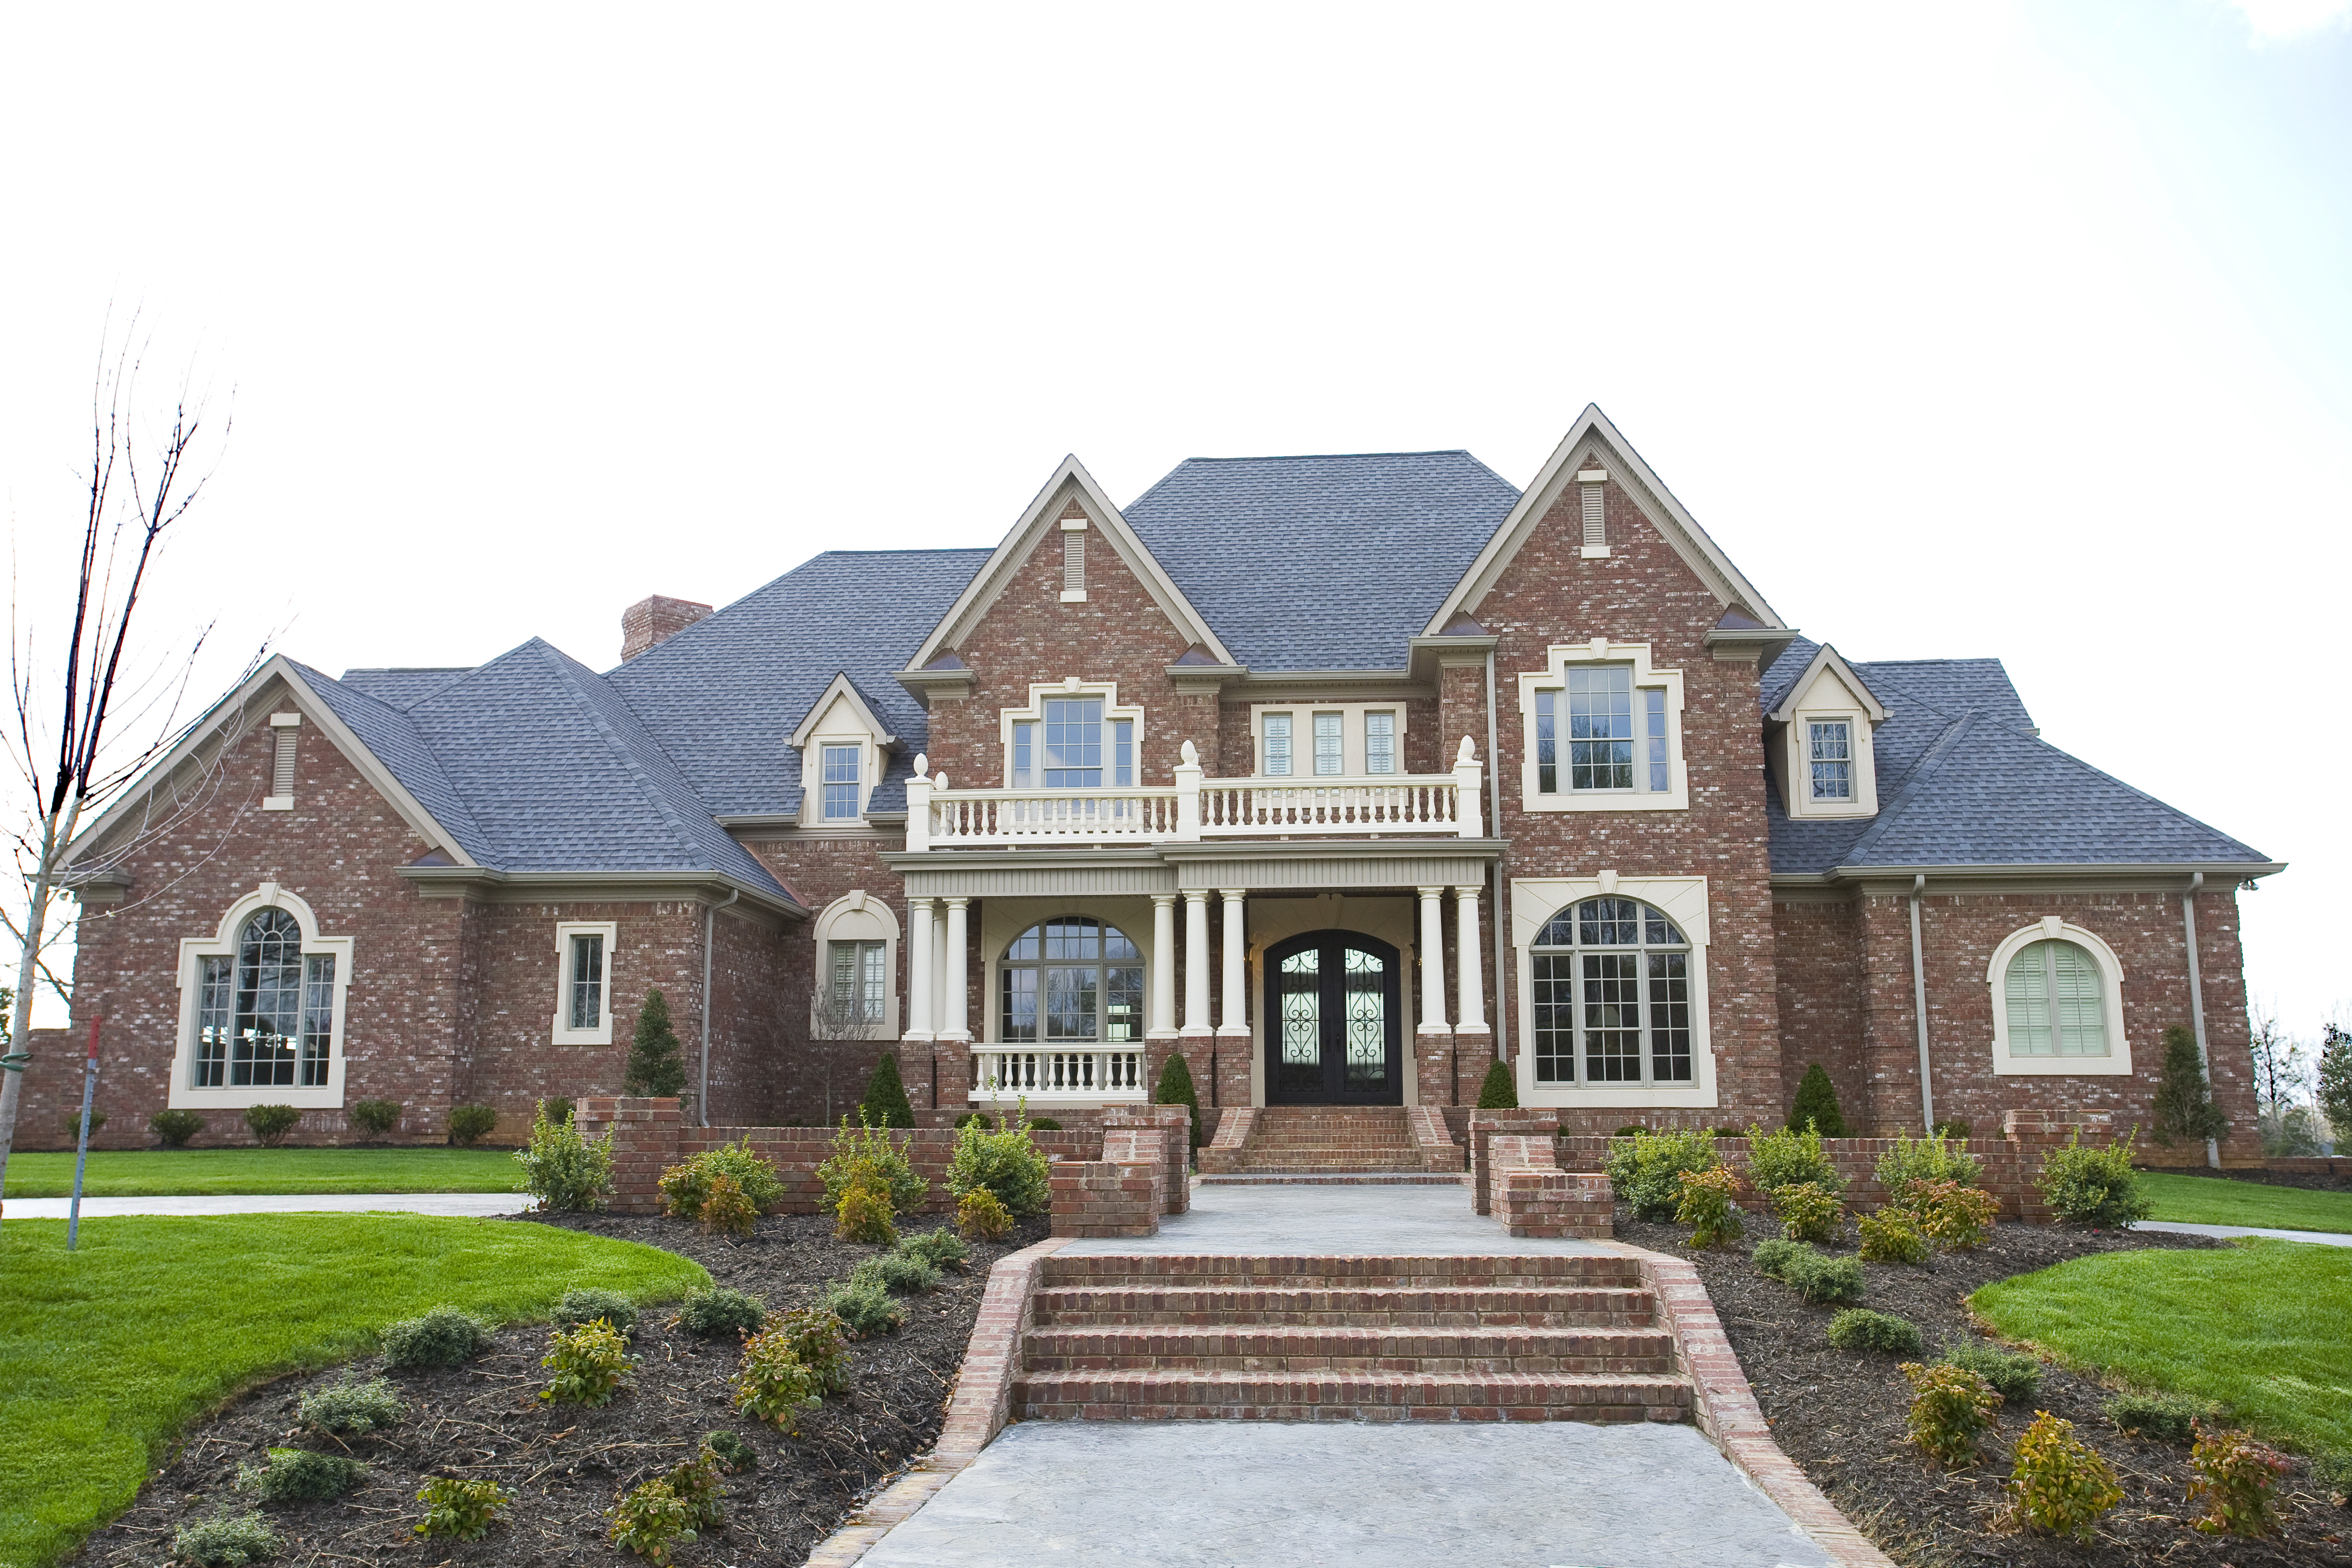 bigstock-Luxury-New-Homes-For-Sale-2910461